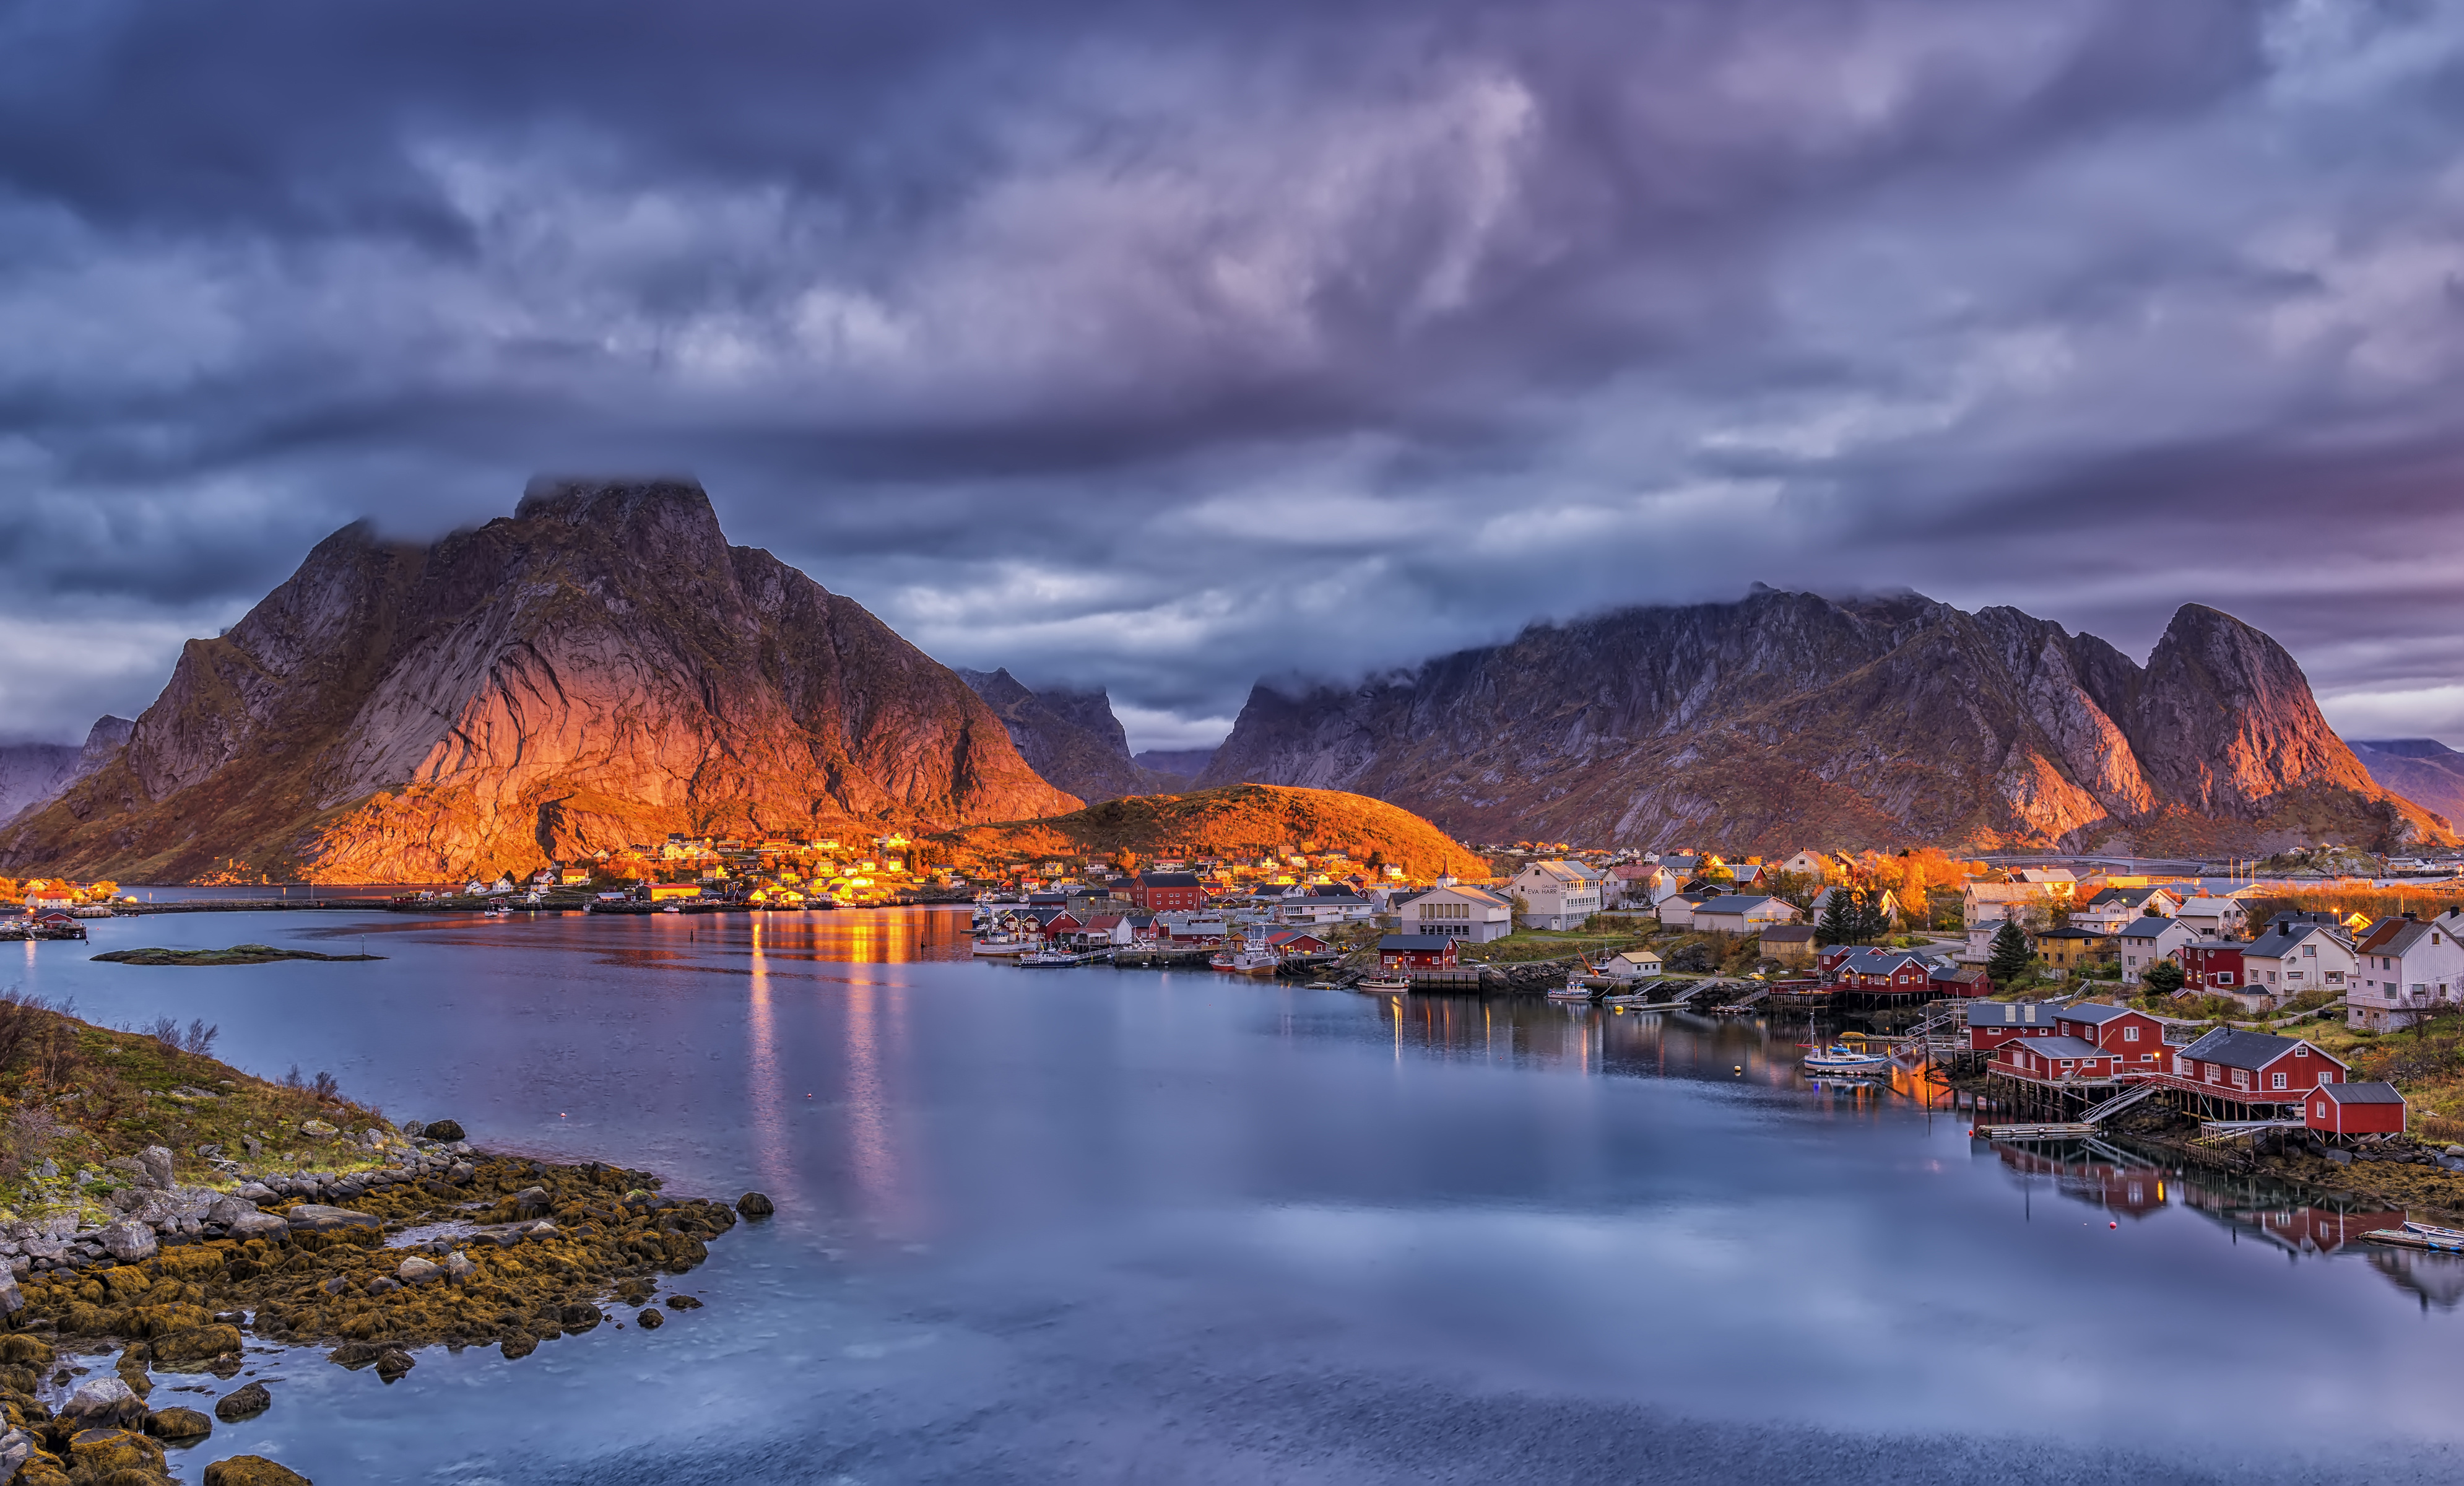 lofoten islands images - HD 1920×1200